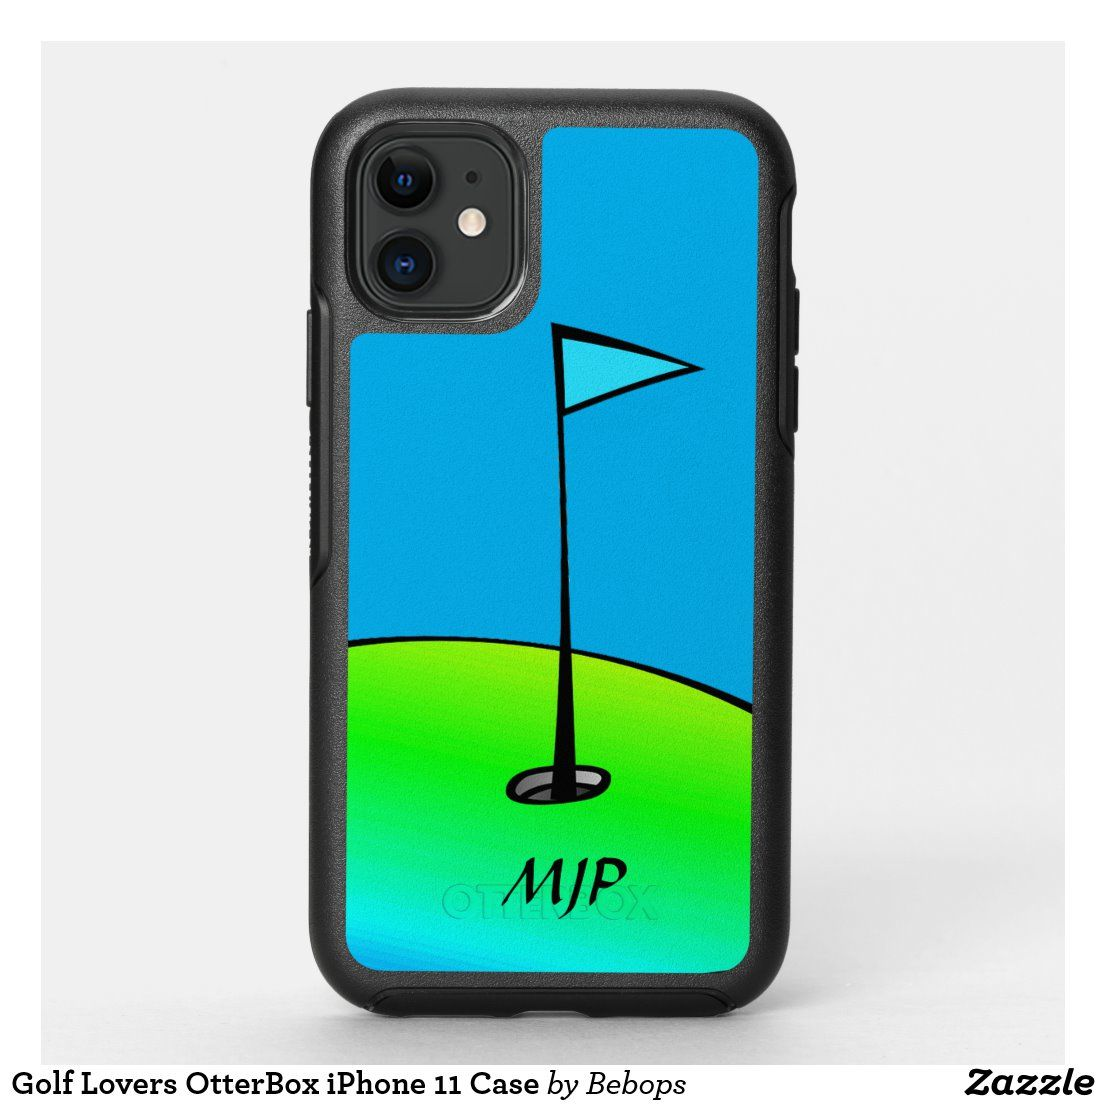 Golf lovers otterbox iphone 11 case